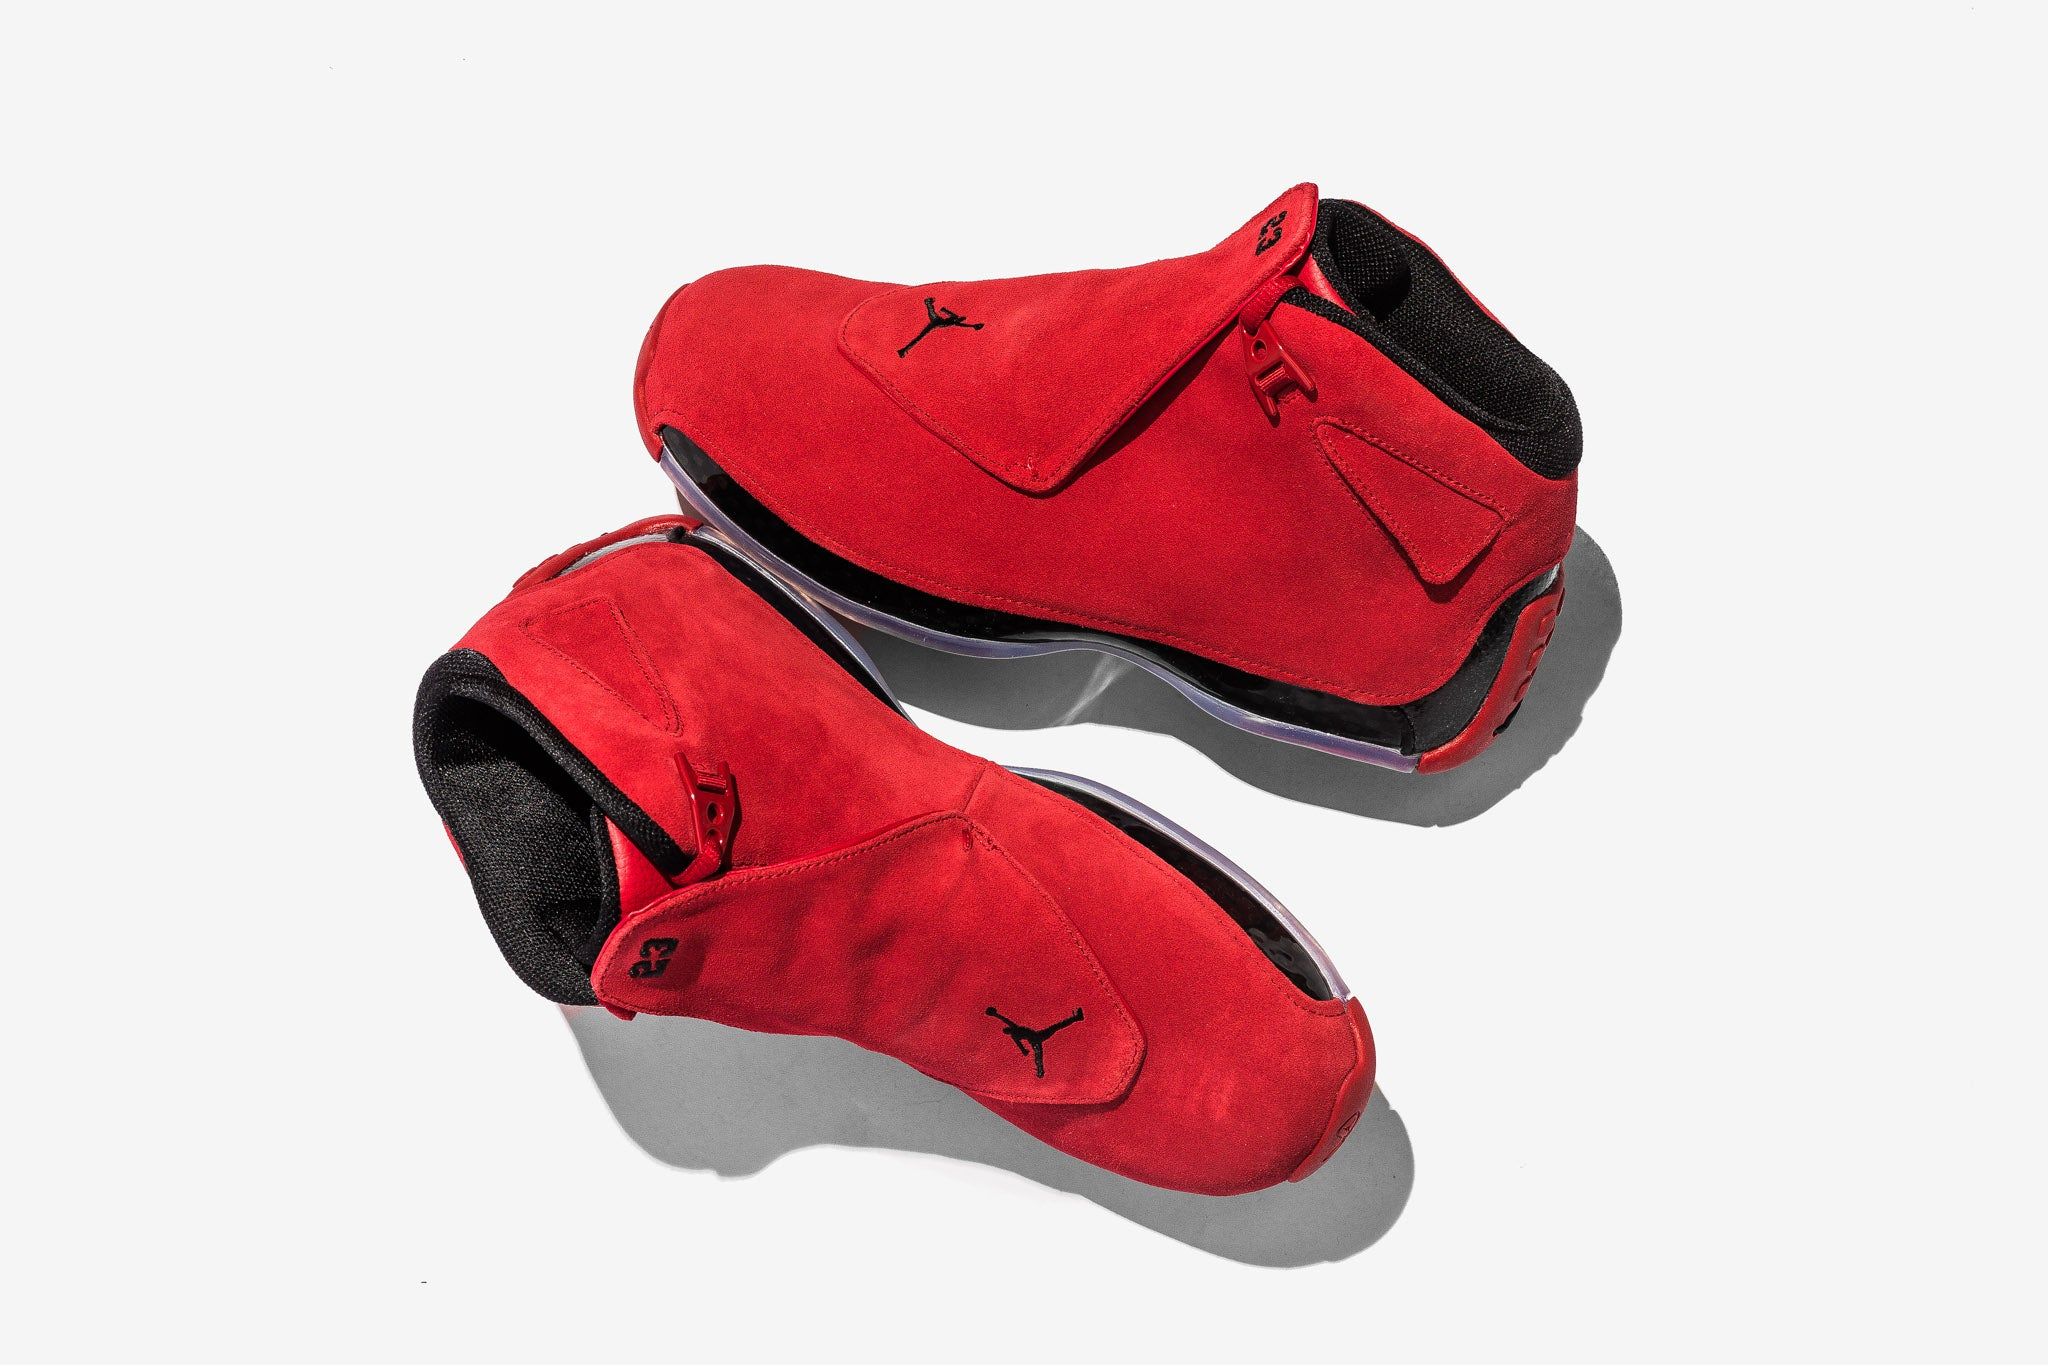 outlet store 8be27 bda19 The Air Jordan 18 would be the last pair for MJ to lace up on the court  before retiring in 2003. The Air Jordan 18 Retro revisits this chapter in  the ...